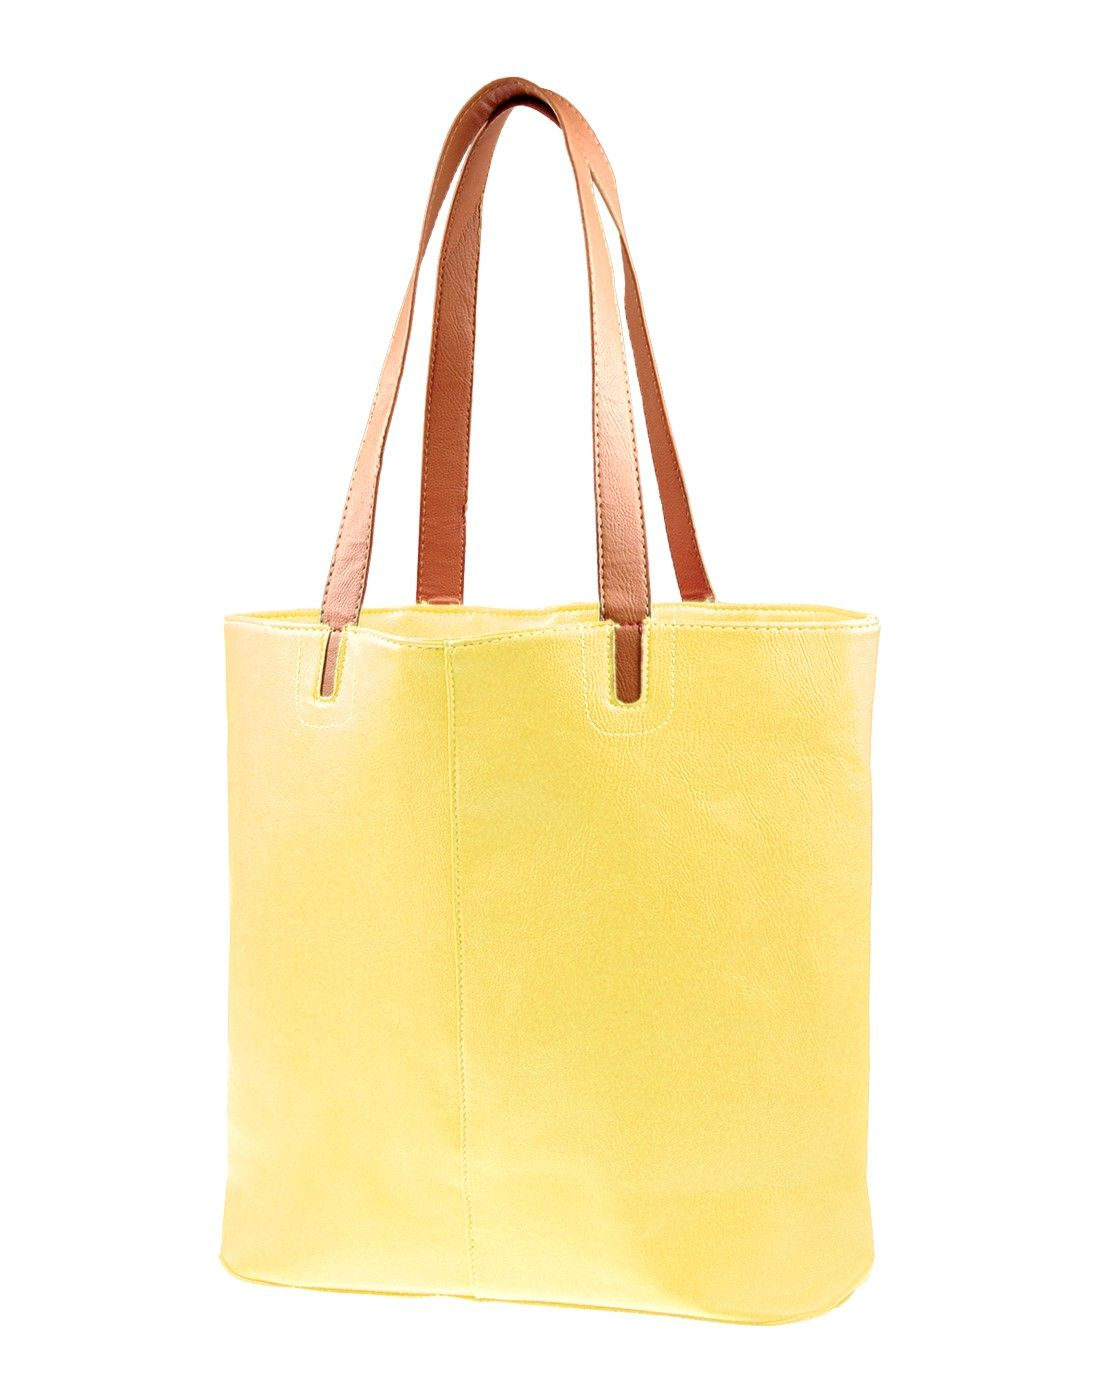 Chic tote - Ardene | Purses & Bags | Pinterest | Accessories, Chic ...